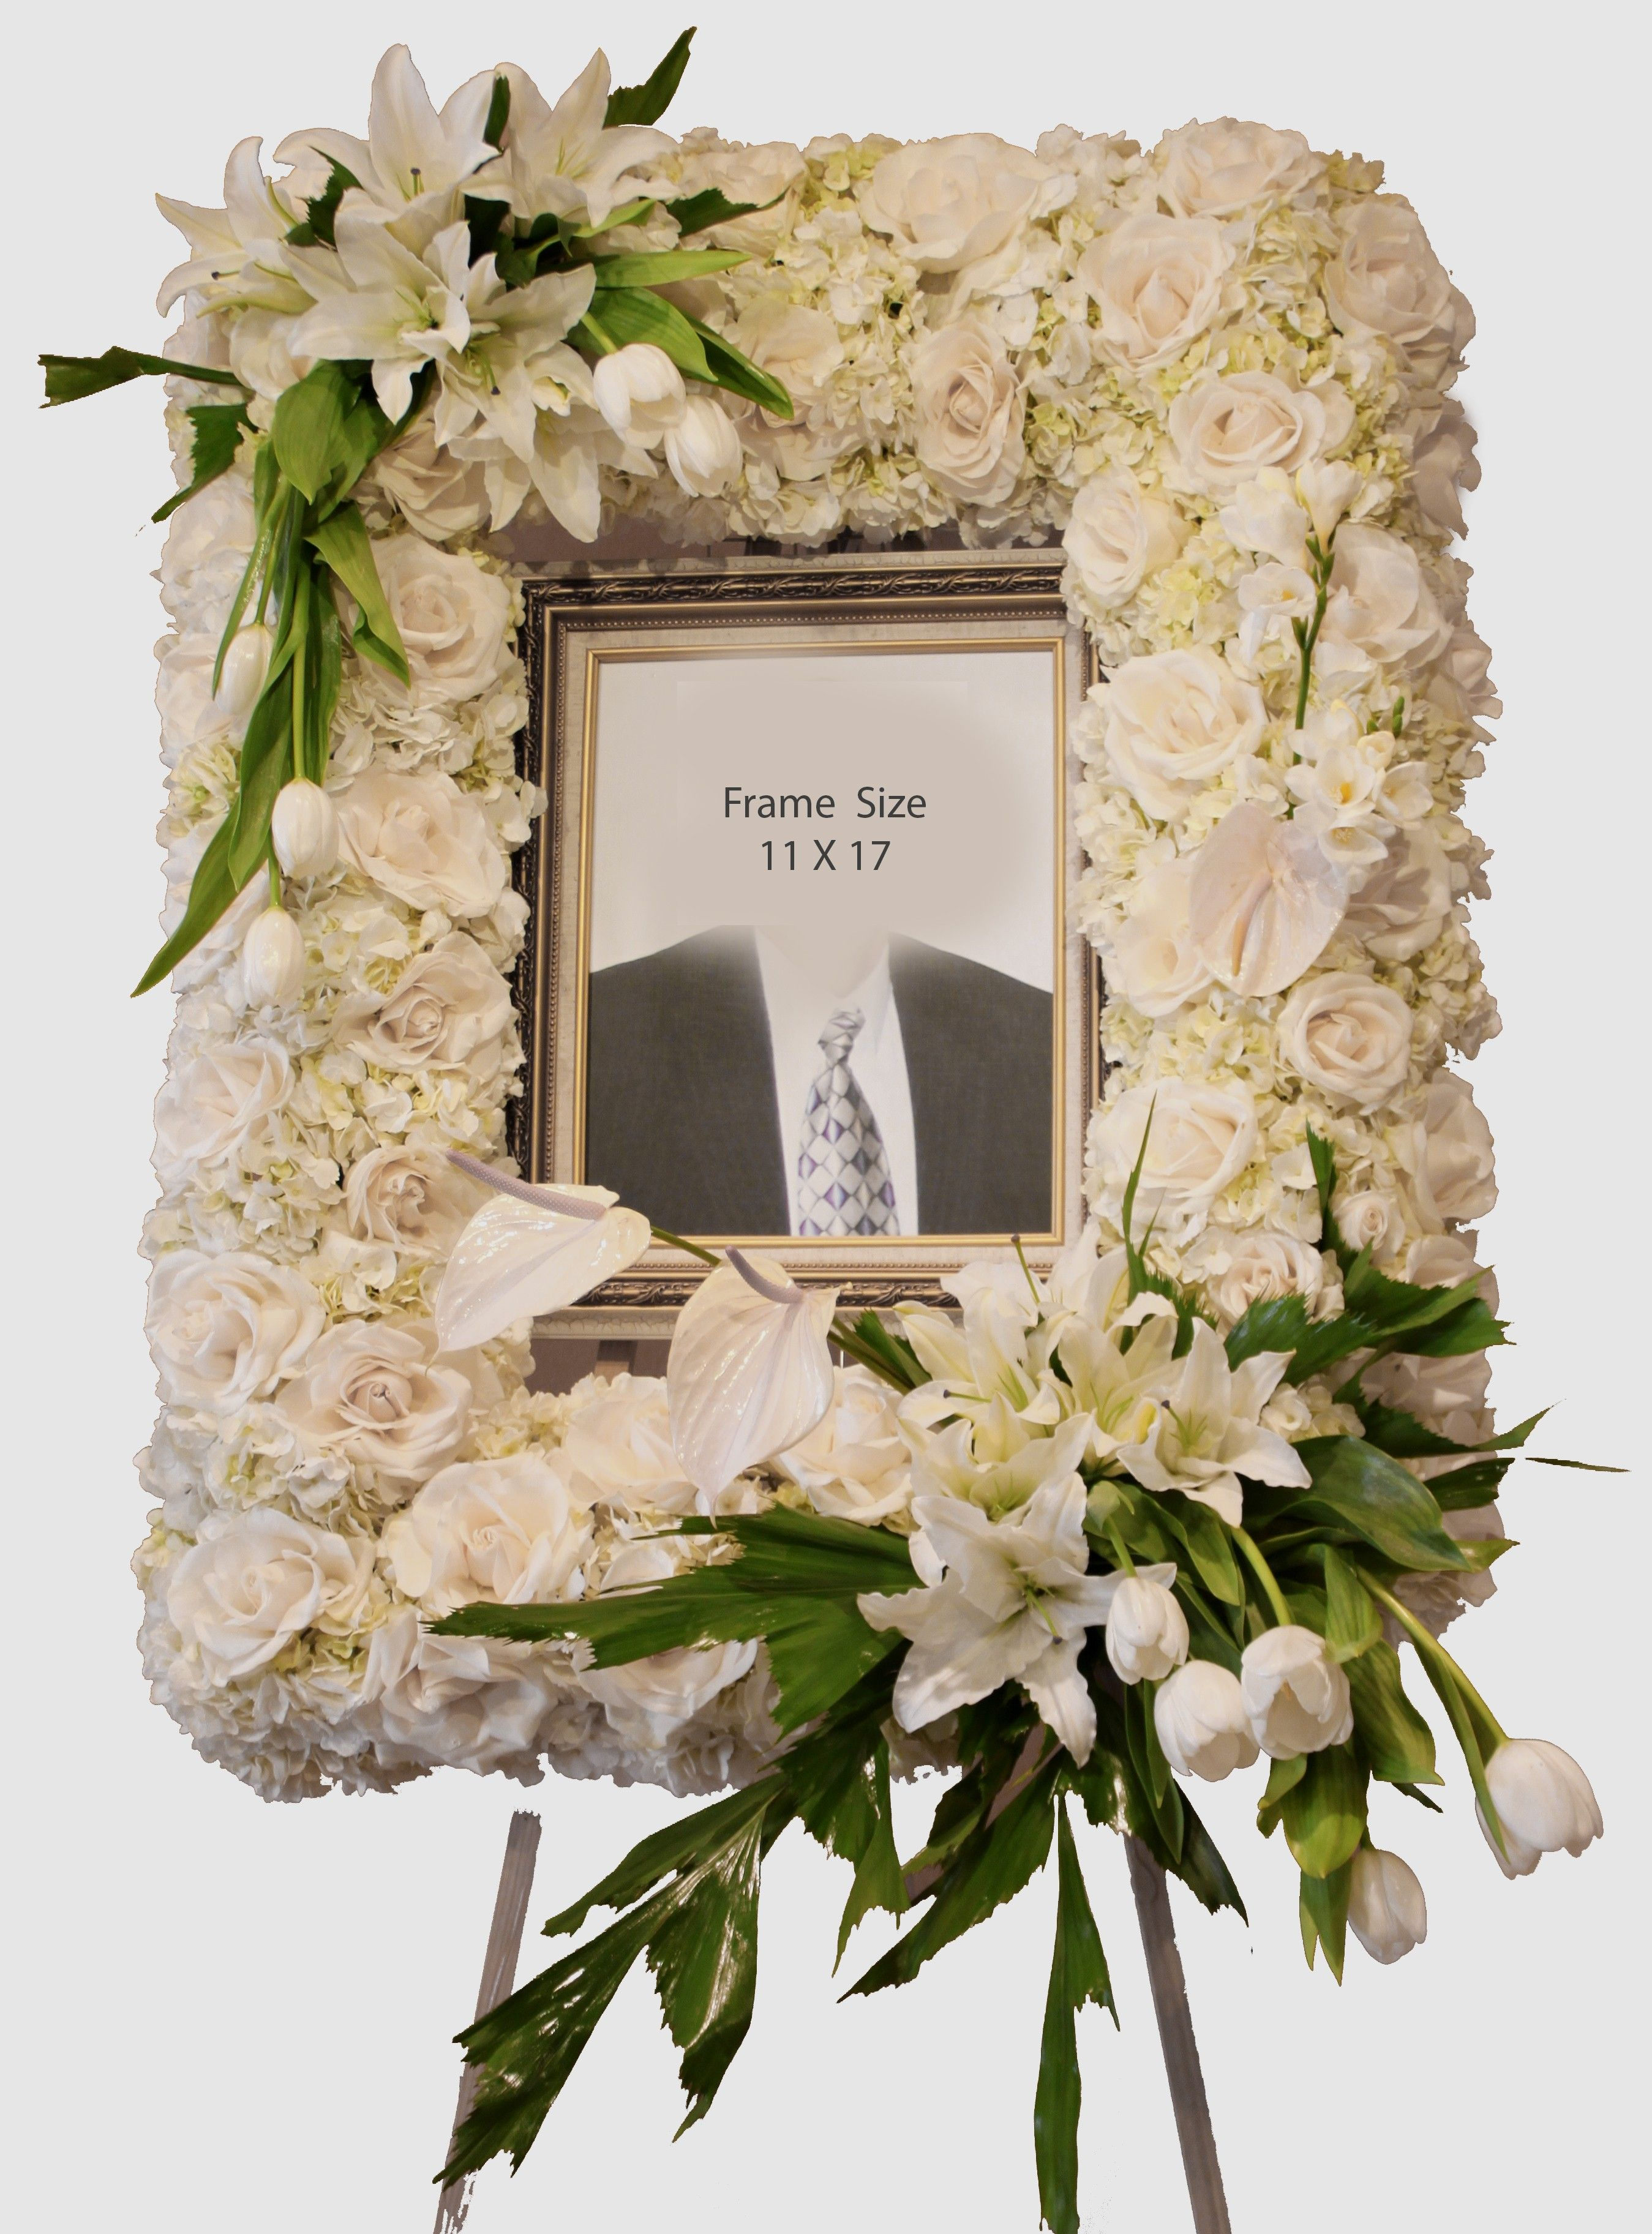 Funeral picture frame pinterest funeral santa fe and send funeral picture frame in santa fe springs ca from le fleur floral couture the best florist in santa fe springs all flowers are hand delivered and izmirmasajfo